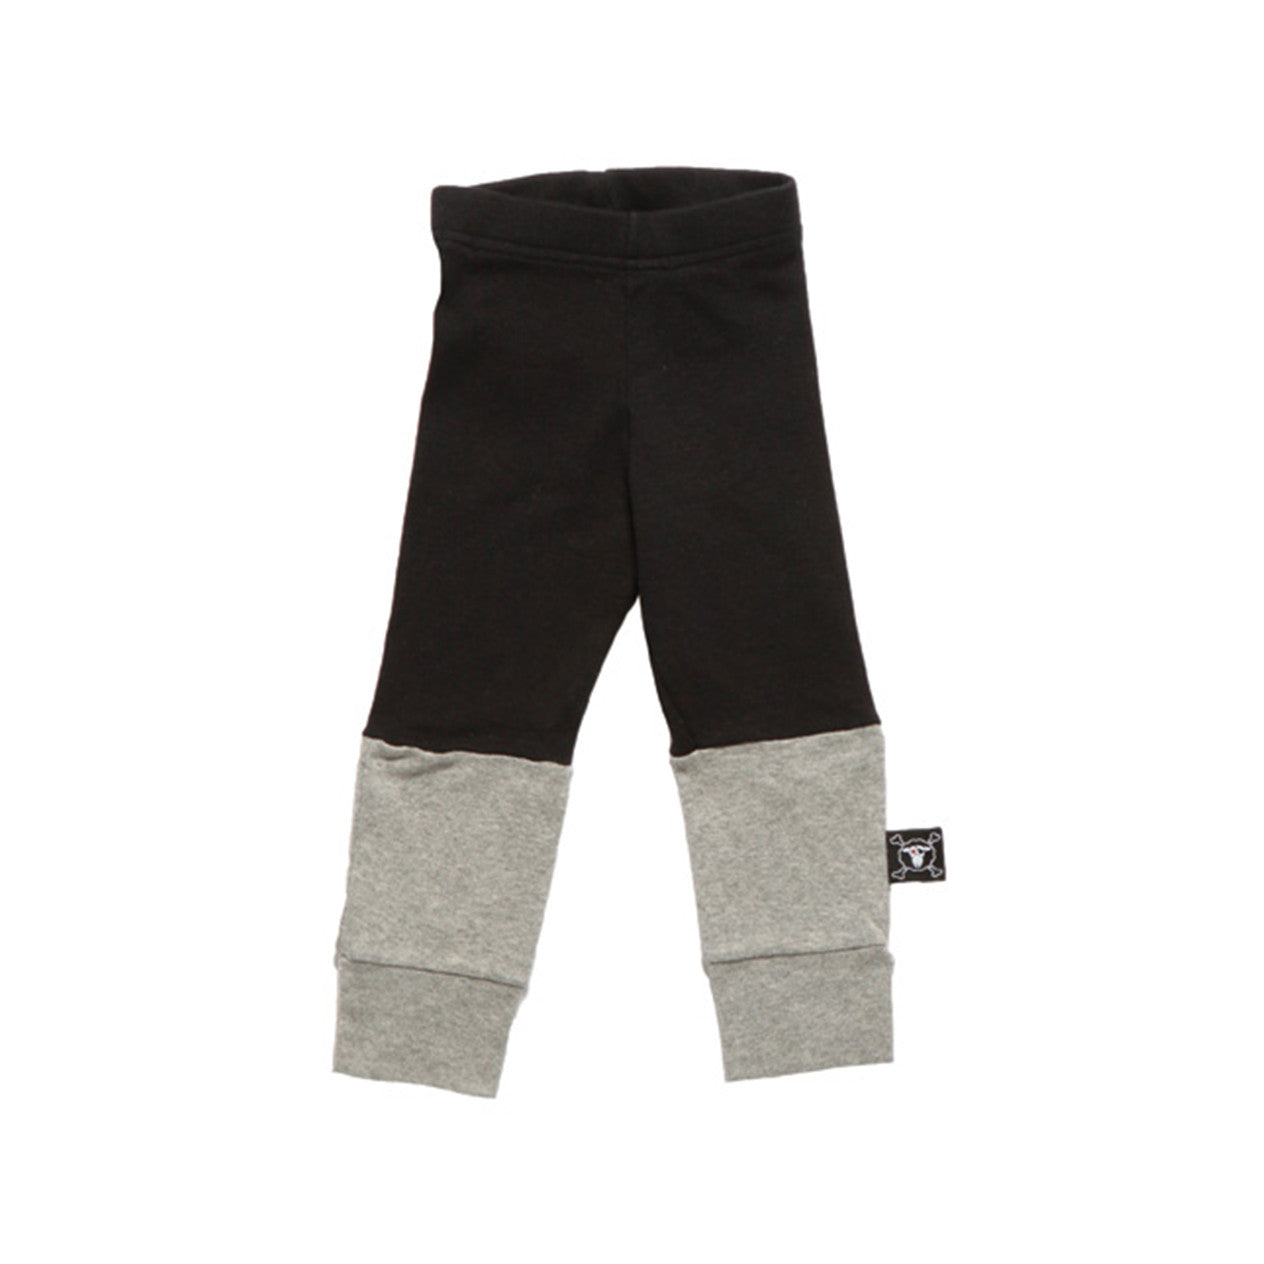 1/4 leggings black/grey